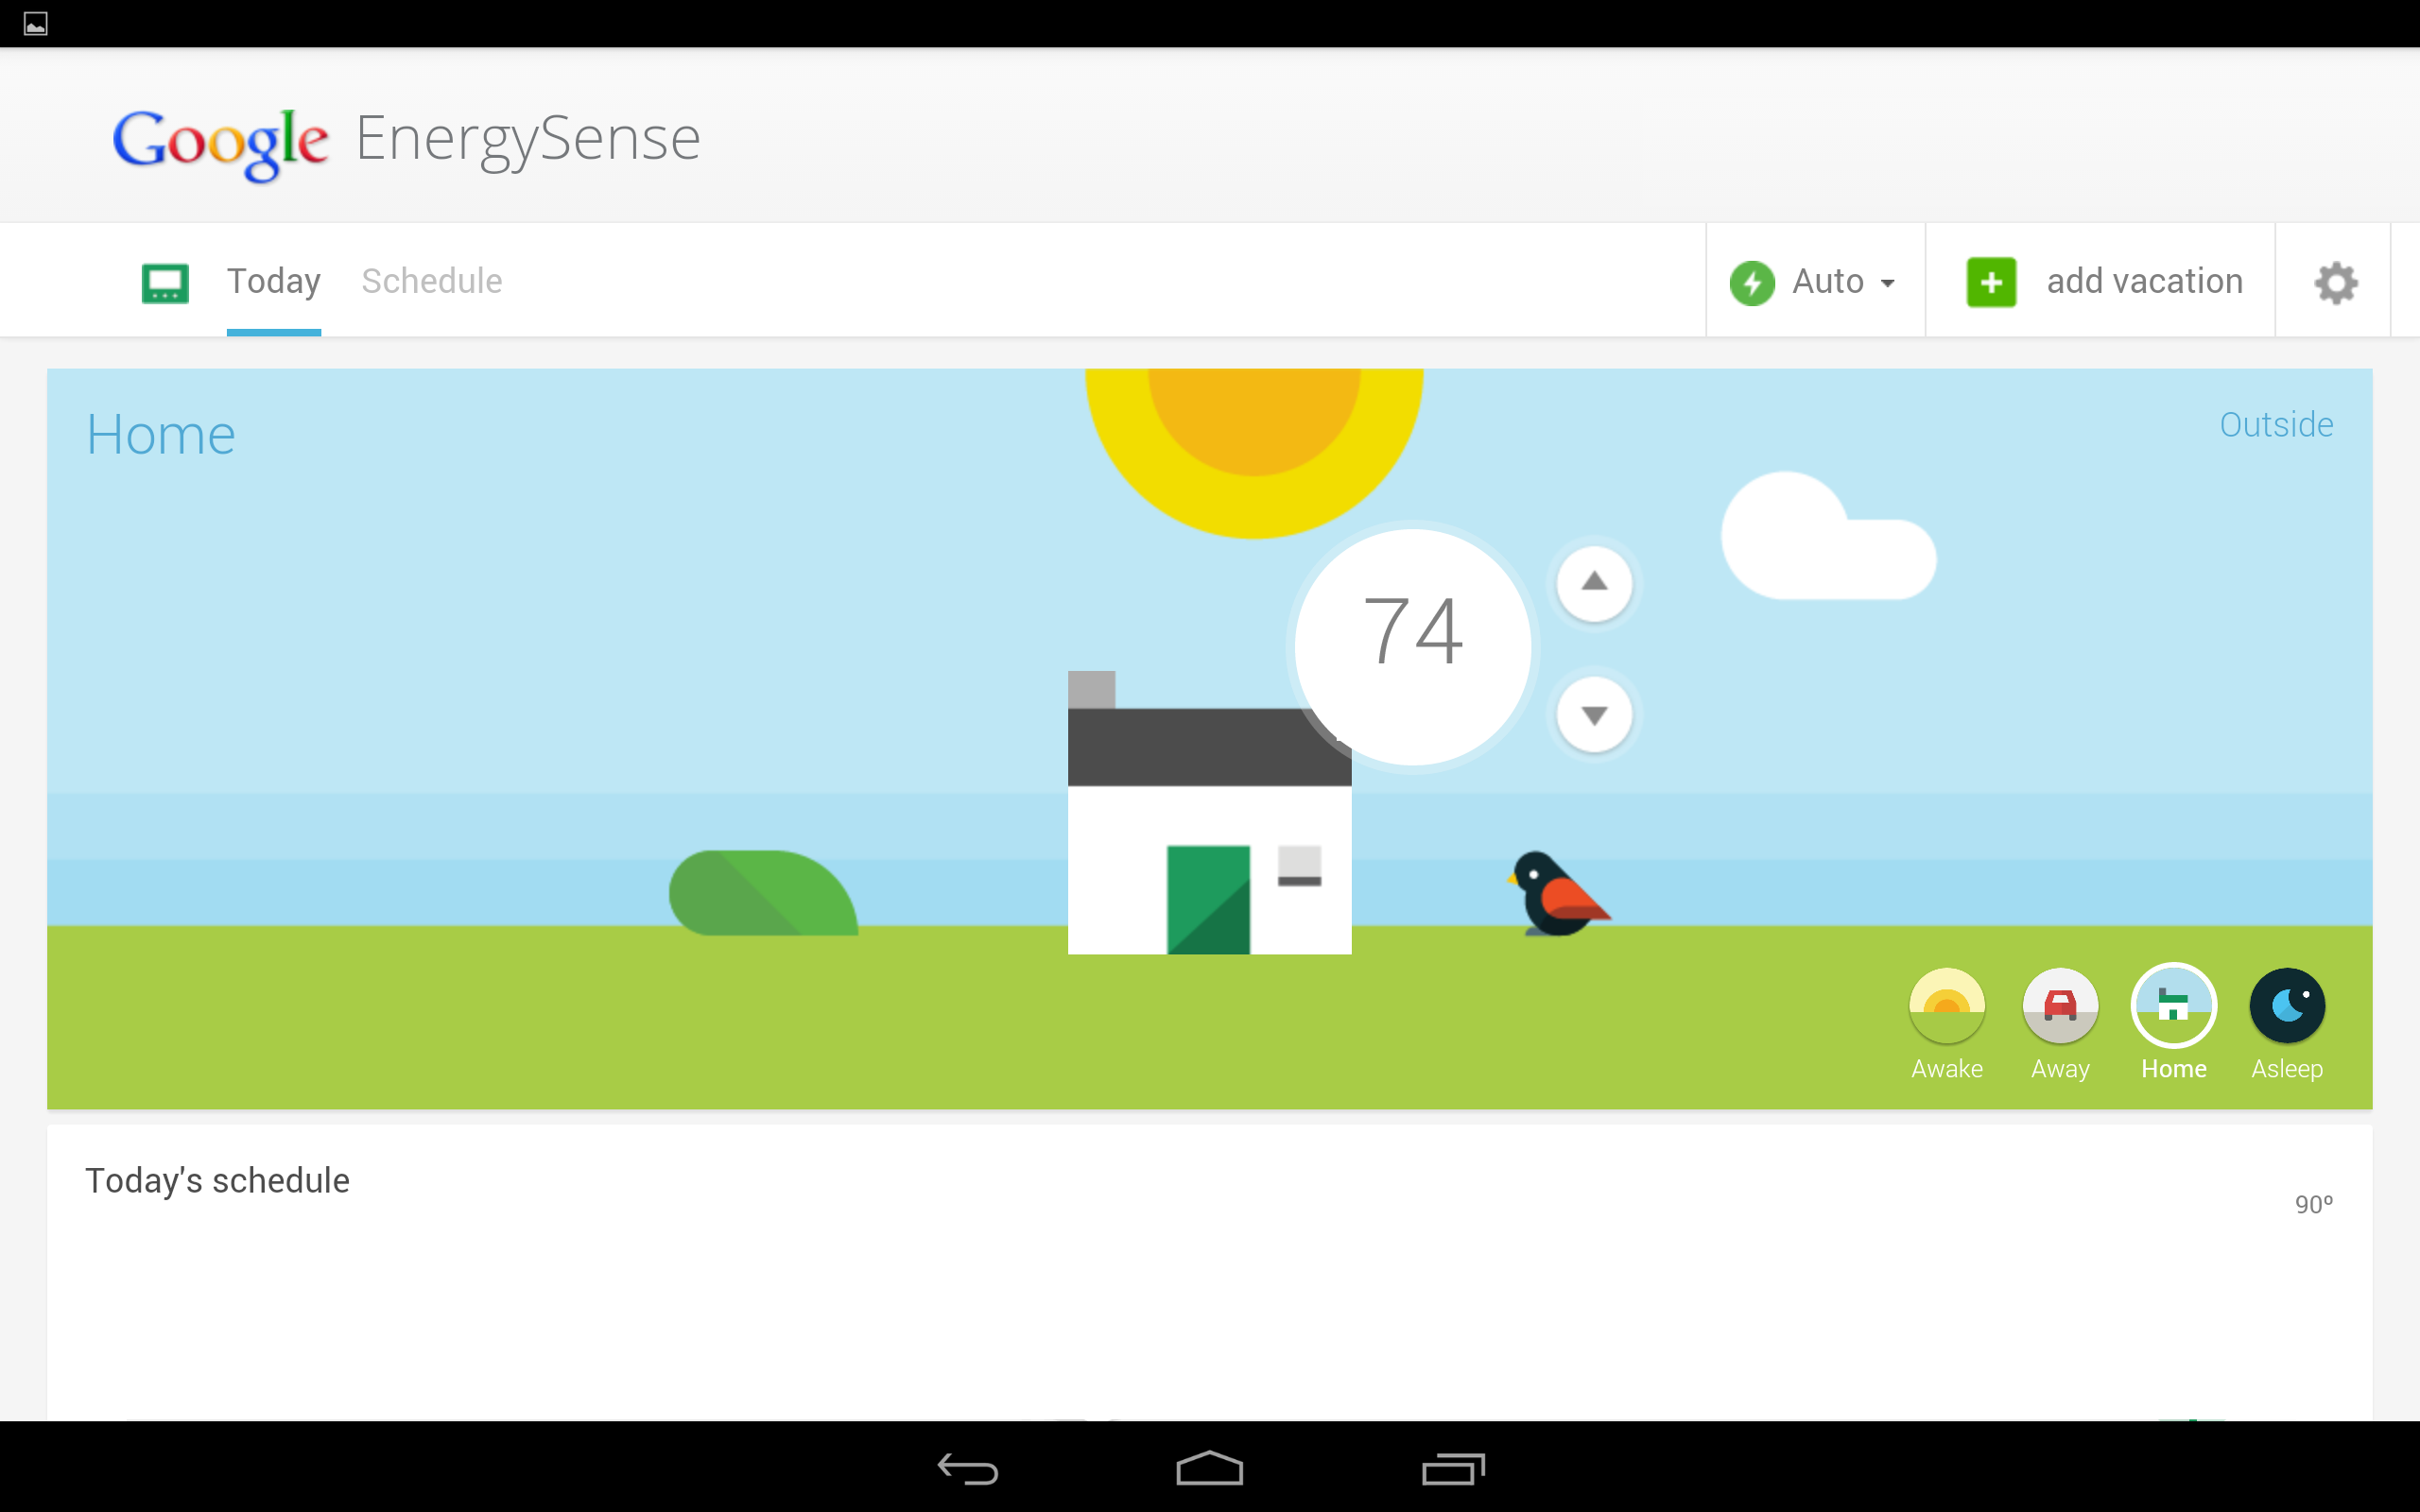 A leaked picture of Google's EnergySense app.